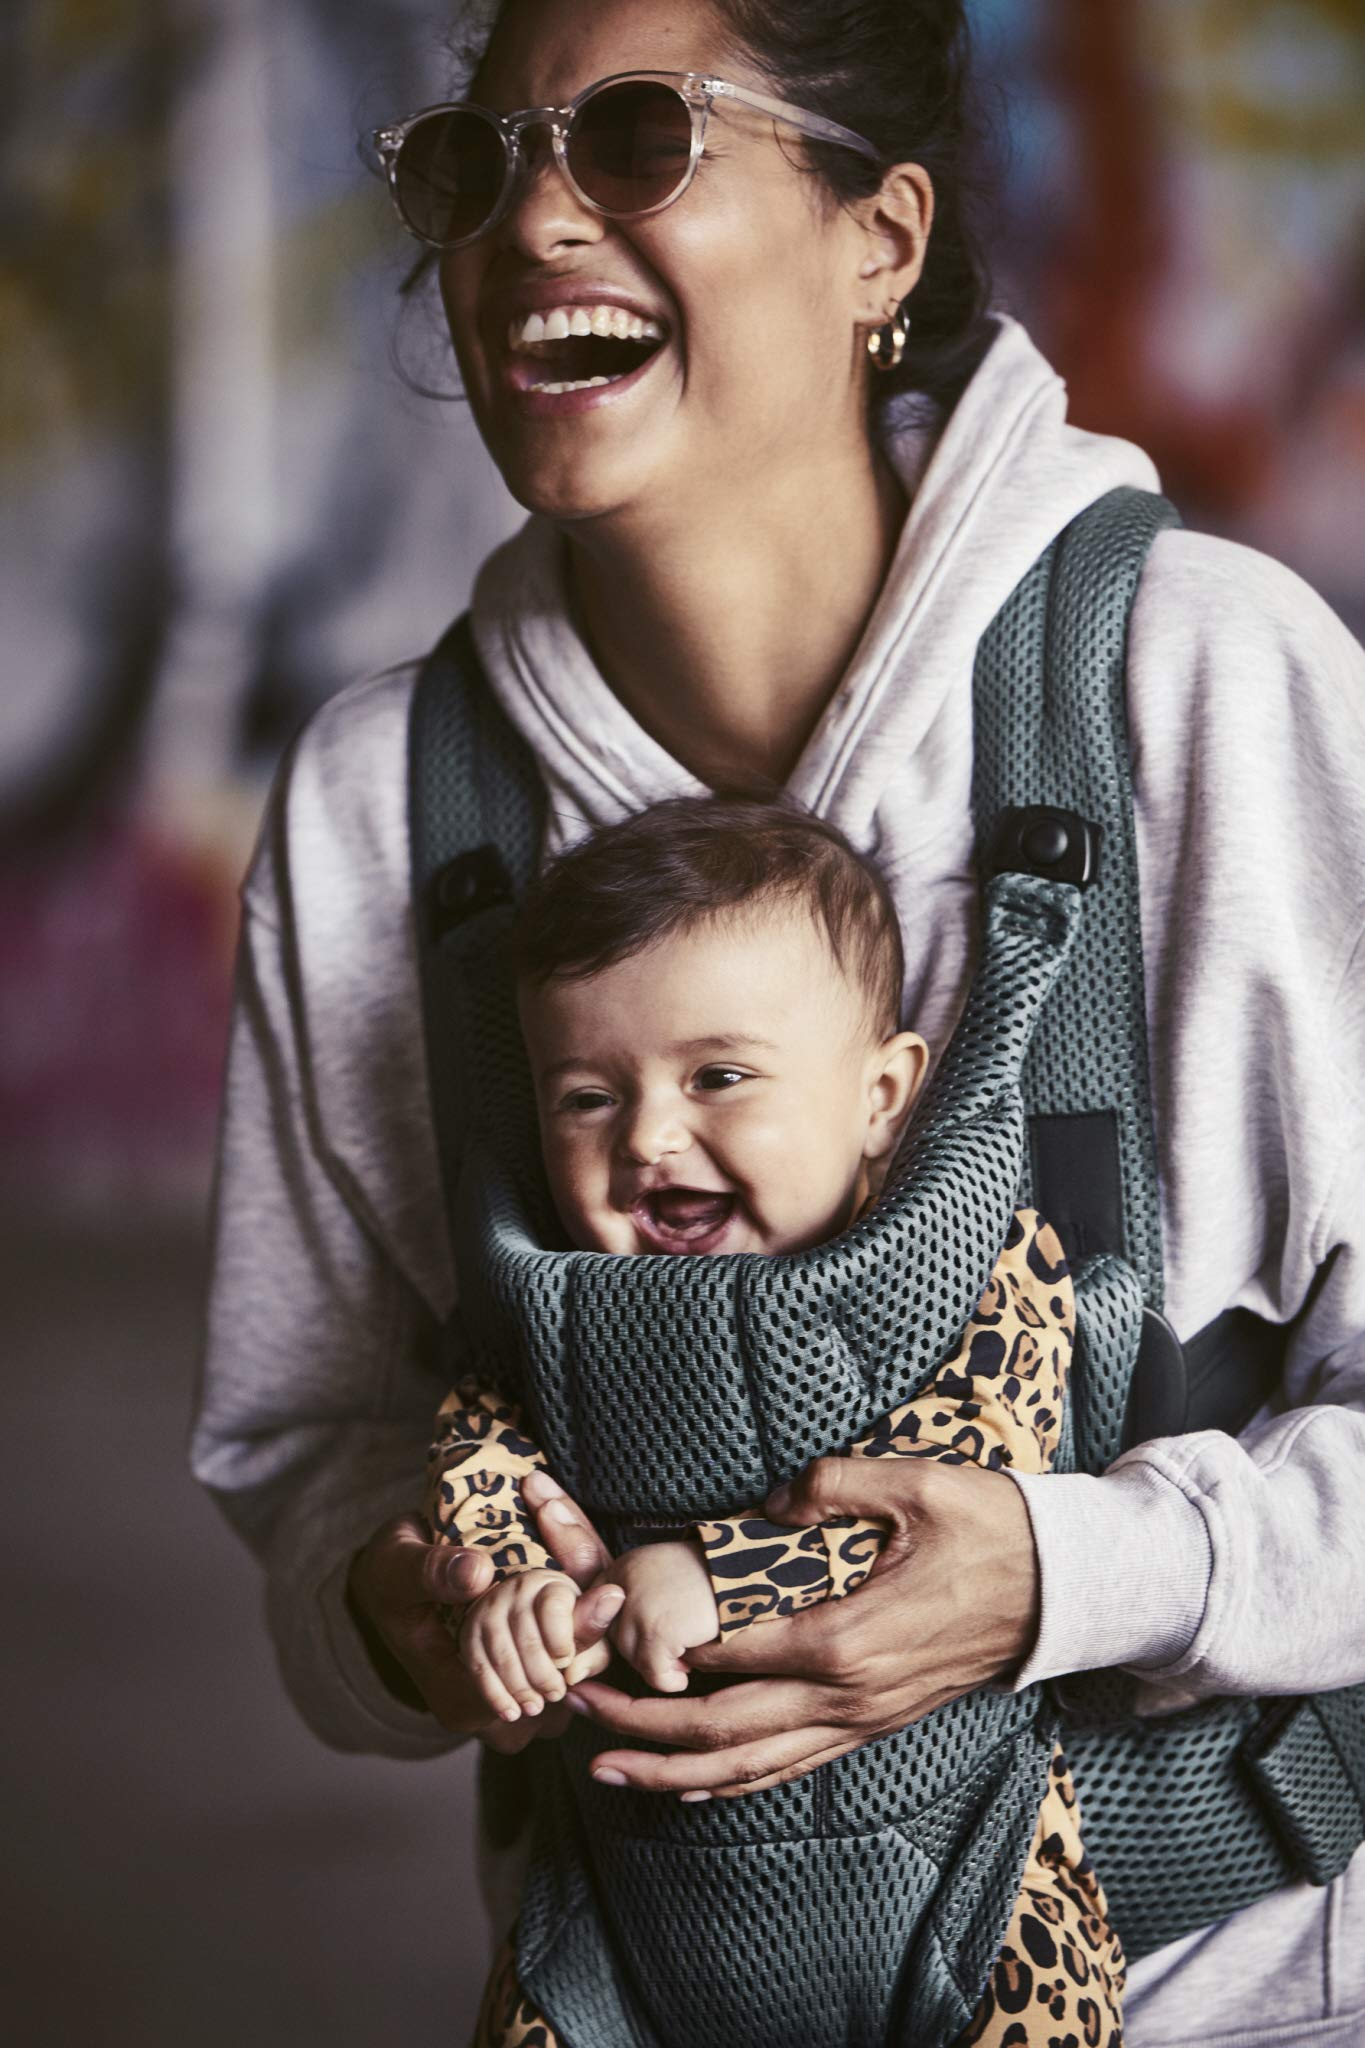 BABYBJÖRN Baby Carrier Move, 3D Mesh, Sage Green Baby Bjorn Excellent comfort with built-in back support and waist belt Easy to put on and take off Soft and airy design in cool 3D mesh 7